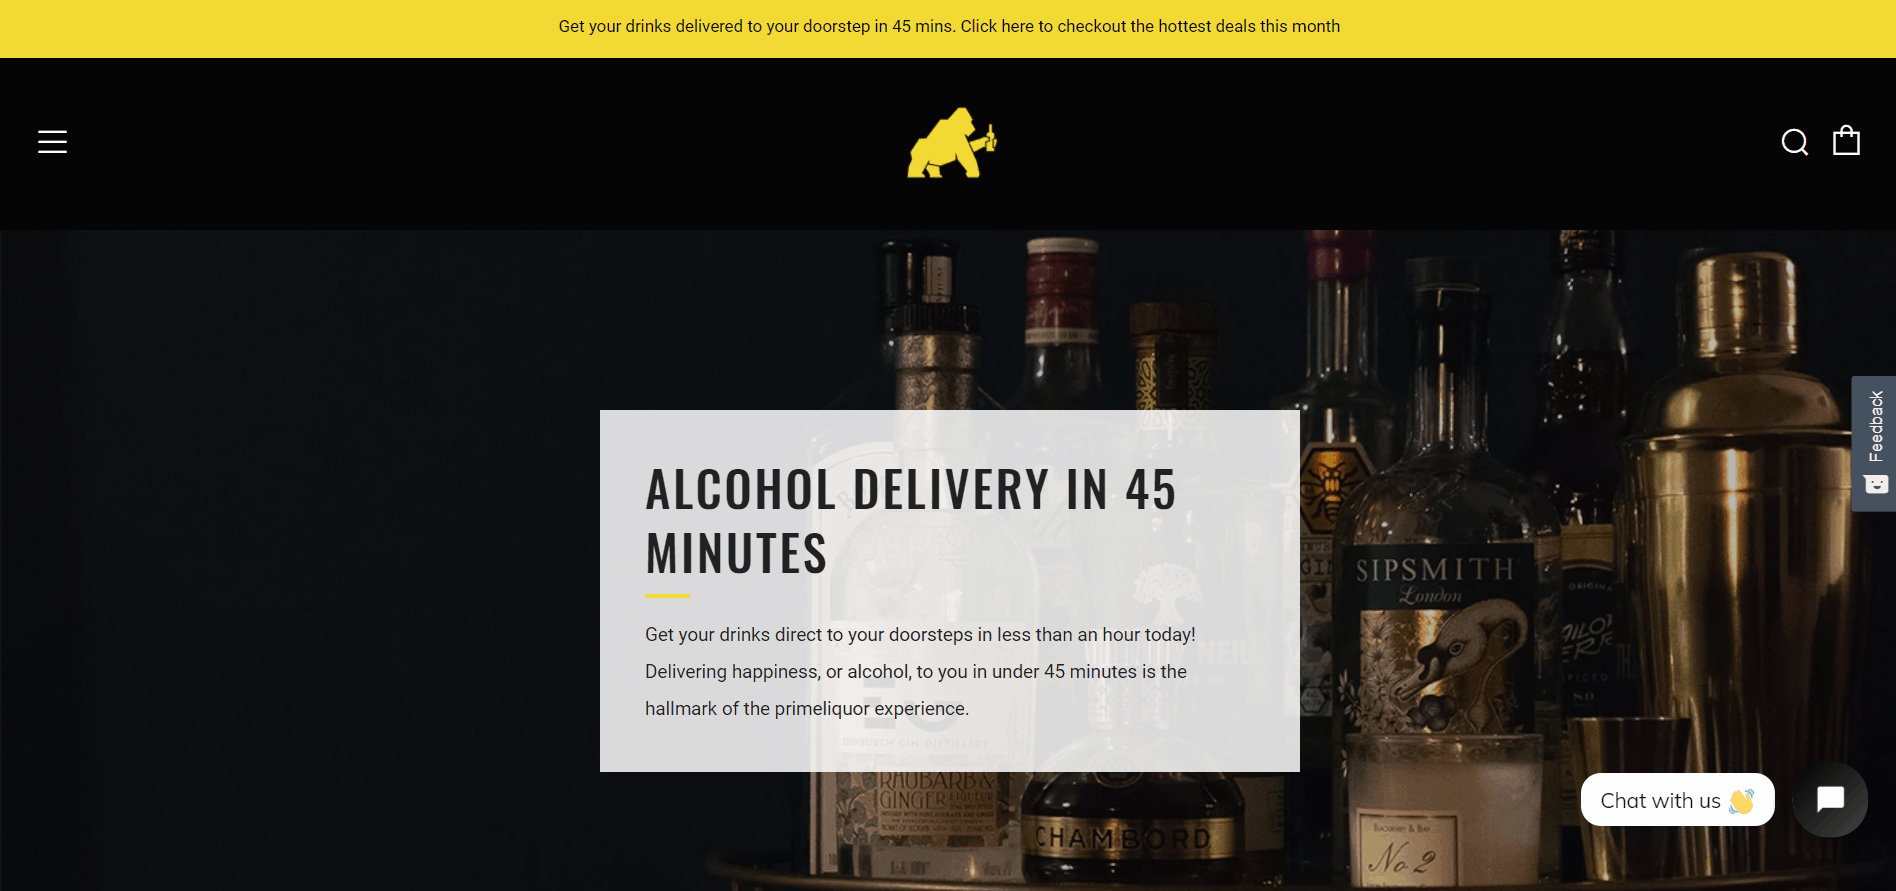 Prime Liquor is a place in Singapore to get Alcohol Delivery fast within 45minutes